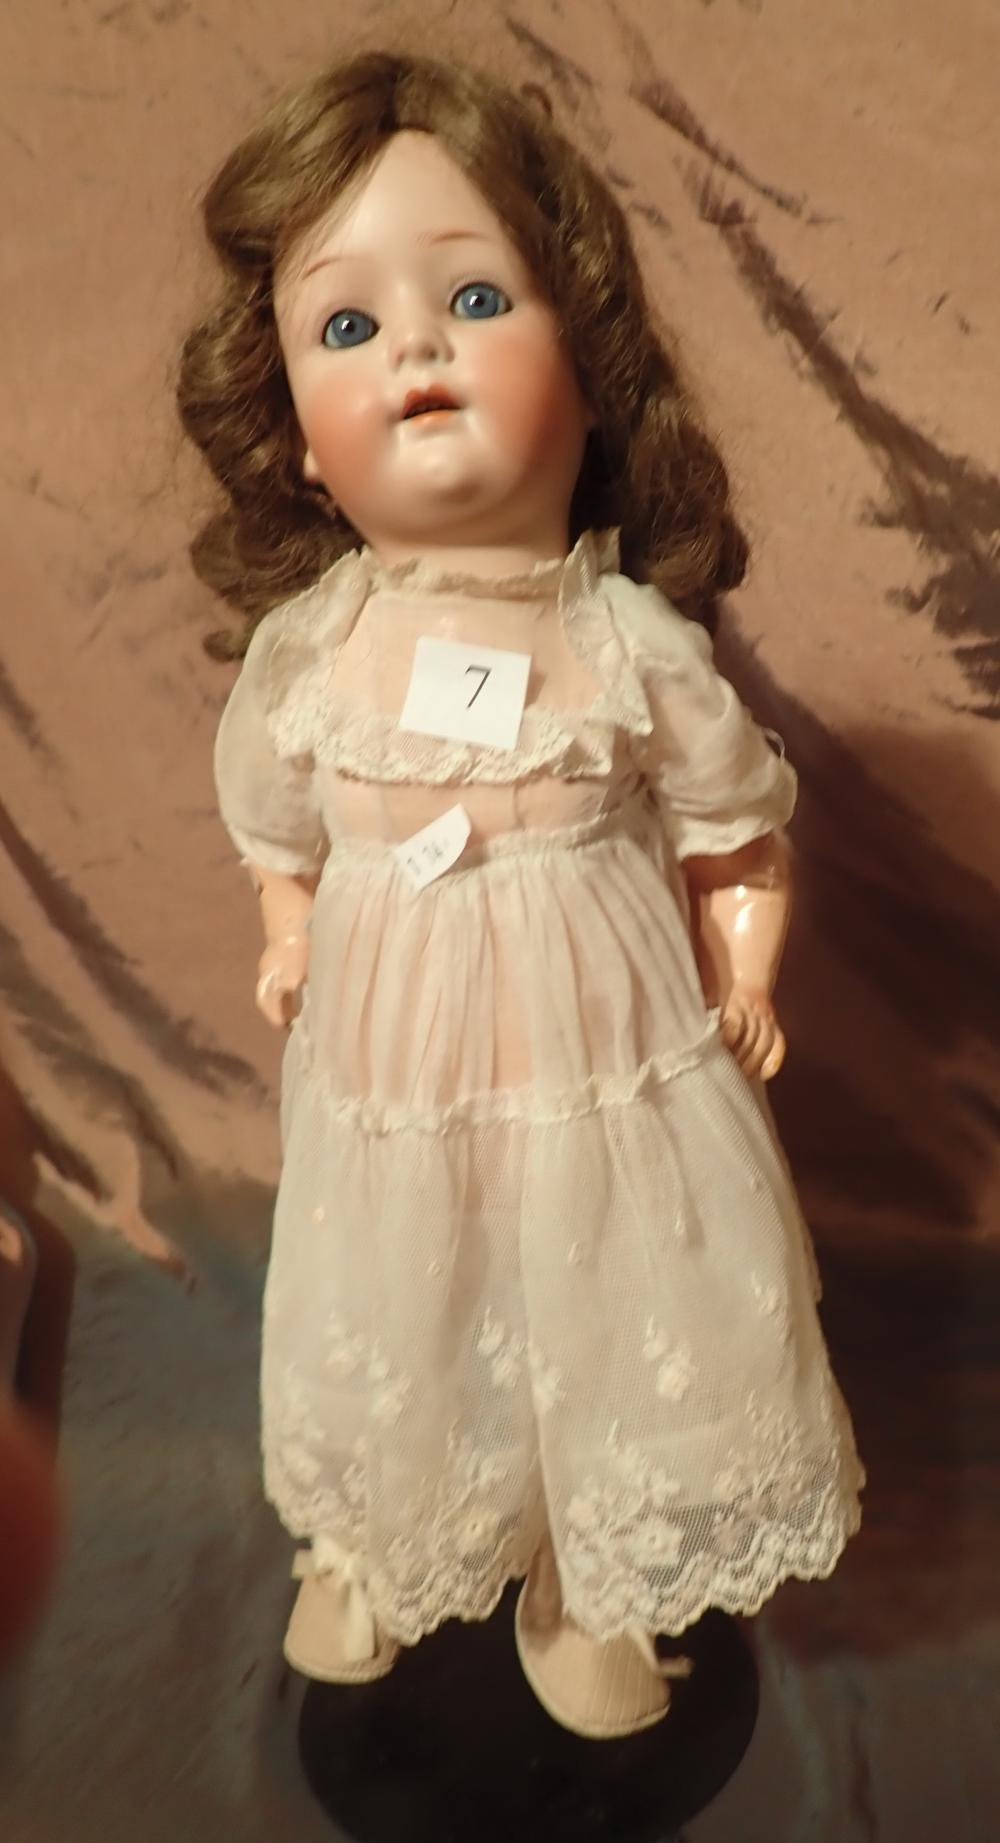 GERMAN DOLL MARKED HEUBACH KOPPELSDORF 312 SUK IN CIRCLE & 1 - HEAD HAS BEEN CRACKED TO THE REAR OTHERWISE A VERY GOOD EXAMPLE - DRESS AND PANTALOONS, SHOES & SOCKS - 17 INCHES HIGH